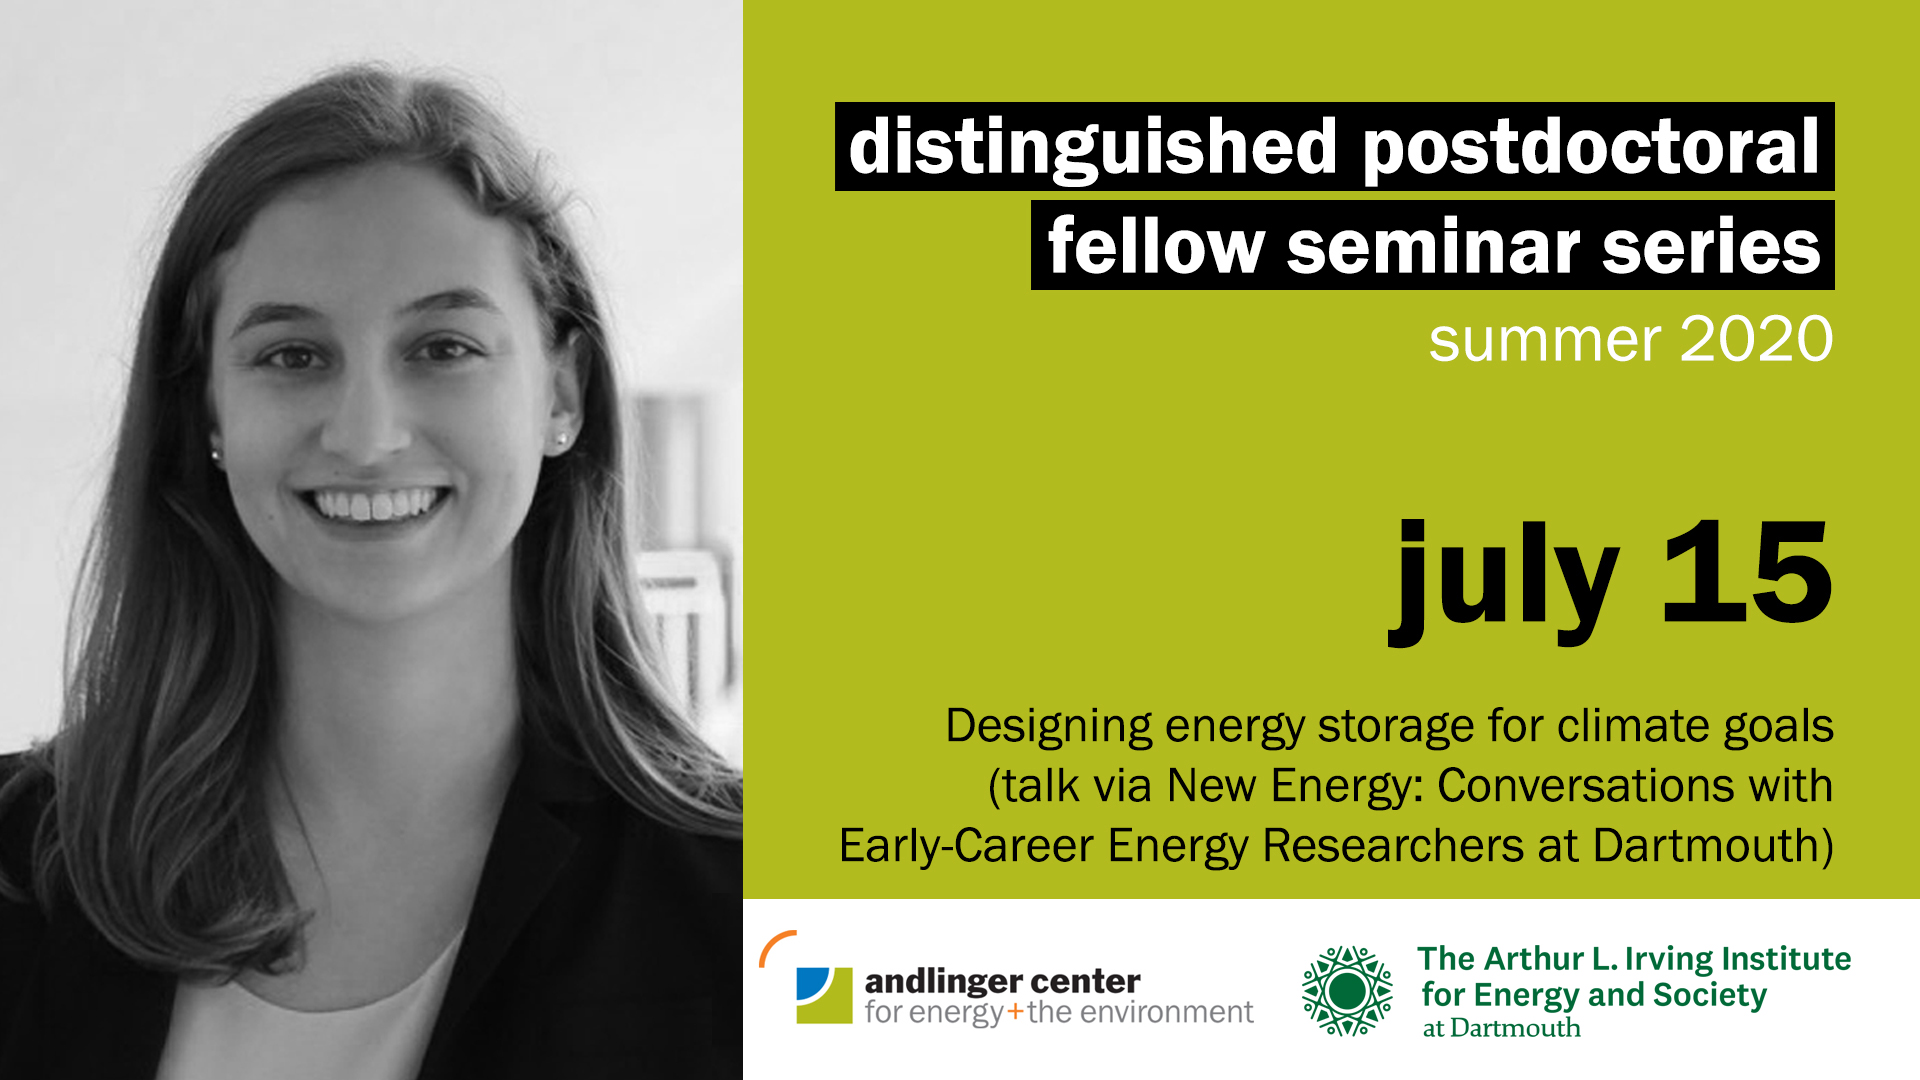 """July 15 at 12pmRebecca Ciez is a former Andlinger Center Distinguished Postdoctoral Fellow and, starting in the fall of 2020, a Postdoctoral Researcher at Columbia University and incoming Assistant Professor in Mechanical Engineering and Earth and Ecological Engineering at Purdue University. Ciez looks at the crucial transition of the electrification of transportation, specifically electric vehicle technology, and electricity generation technologies. On the former, she focuses on the interactions between electric vehicle technology and consumer adoption by developing a model of the state of used electric vehicles at their time of sale, and comparing this model with consumer willingness to pay for different vehicle attributes that would justify battery replacement between owners. For the latter, Ciez looks at design choices, operating methods, and how use requirements work together in solar energy generation and storage systems. Her talk is via the New Energy: Conversations with Early-Career Energy Researchers series at the Arthur L. Irving Institute for Energy & Society at Dartmouth.Twitter 